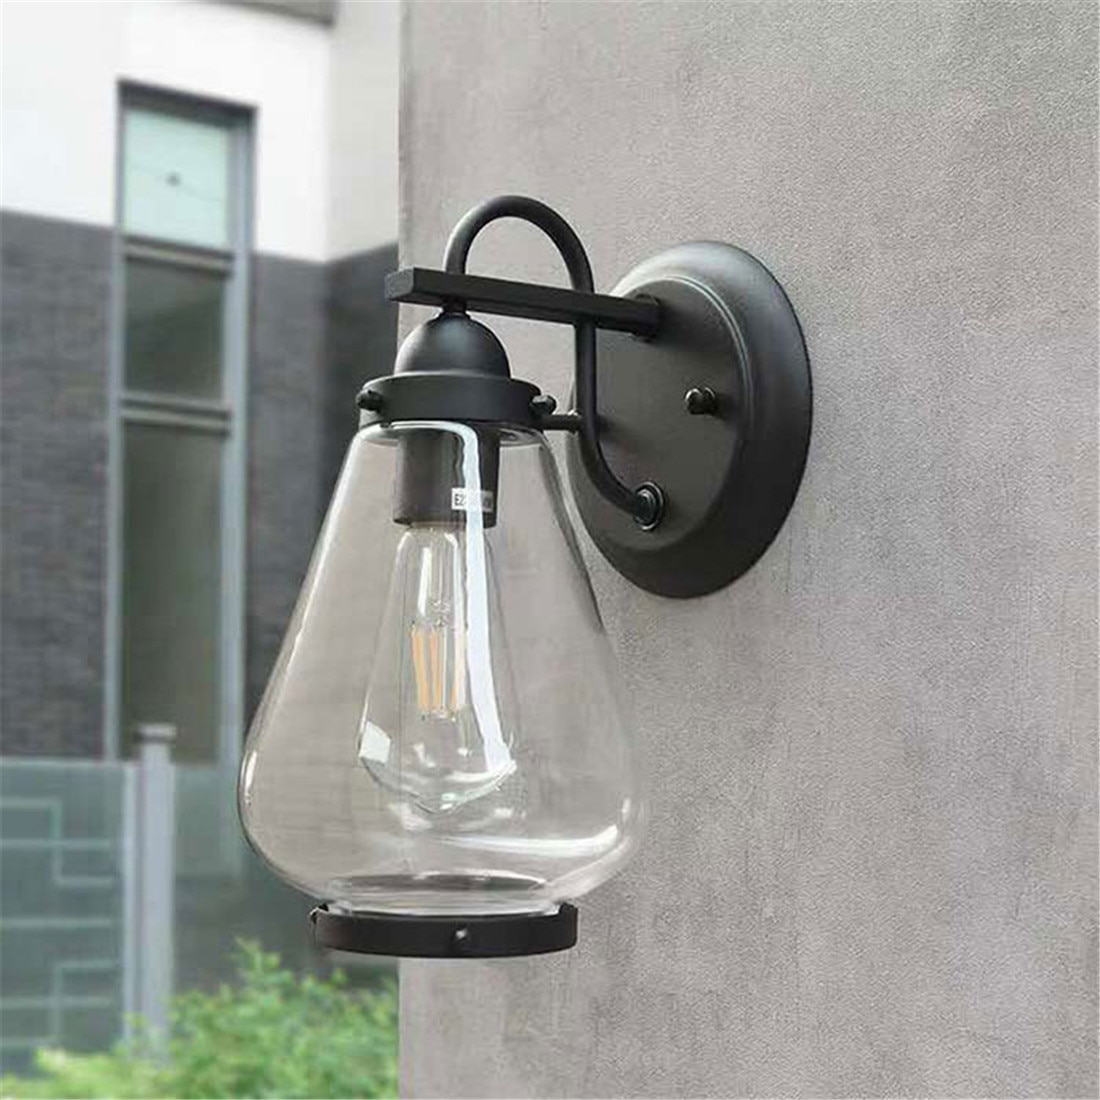 Outdoor Indoor Wall Sconce, Outdoor Light Fixture Wall Mount Matte Black Wall Lantern with Clear Glass Shade for Garage, Doorway enlarge